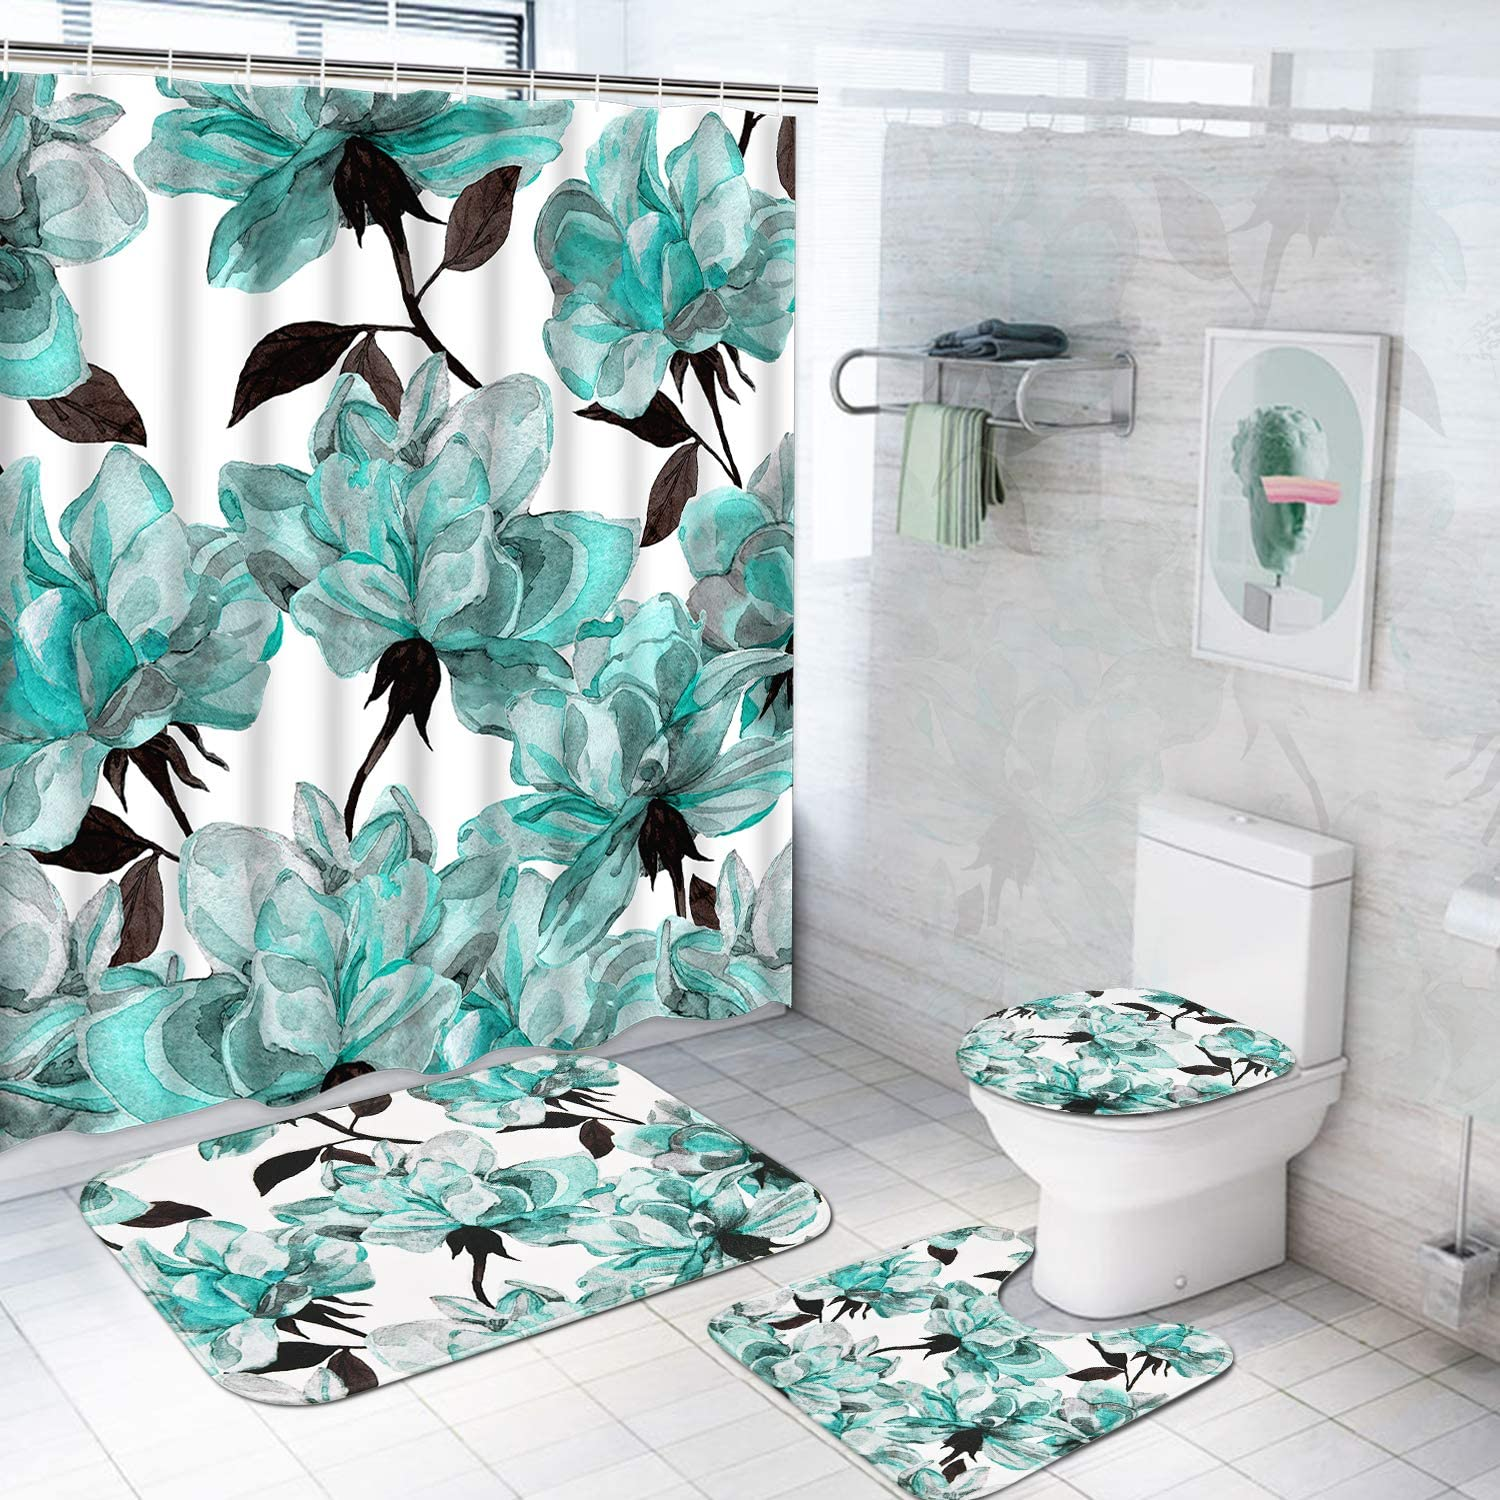 Amazon Com Tamoc 4 Pcs Watercolor Flower Shower Curtain Set With Non Slip Rug Toilet Lid Cover And Bath Mat Blue Rose Shower Curtain With 12 Hooks Waterproof Colorful Floral Bathroom Shower Curtain Furniture